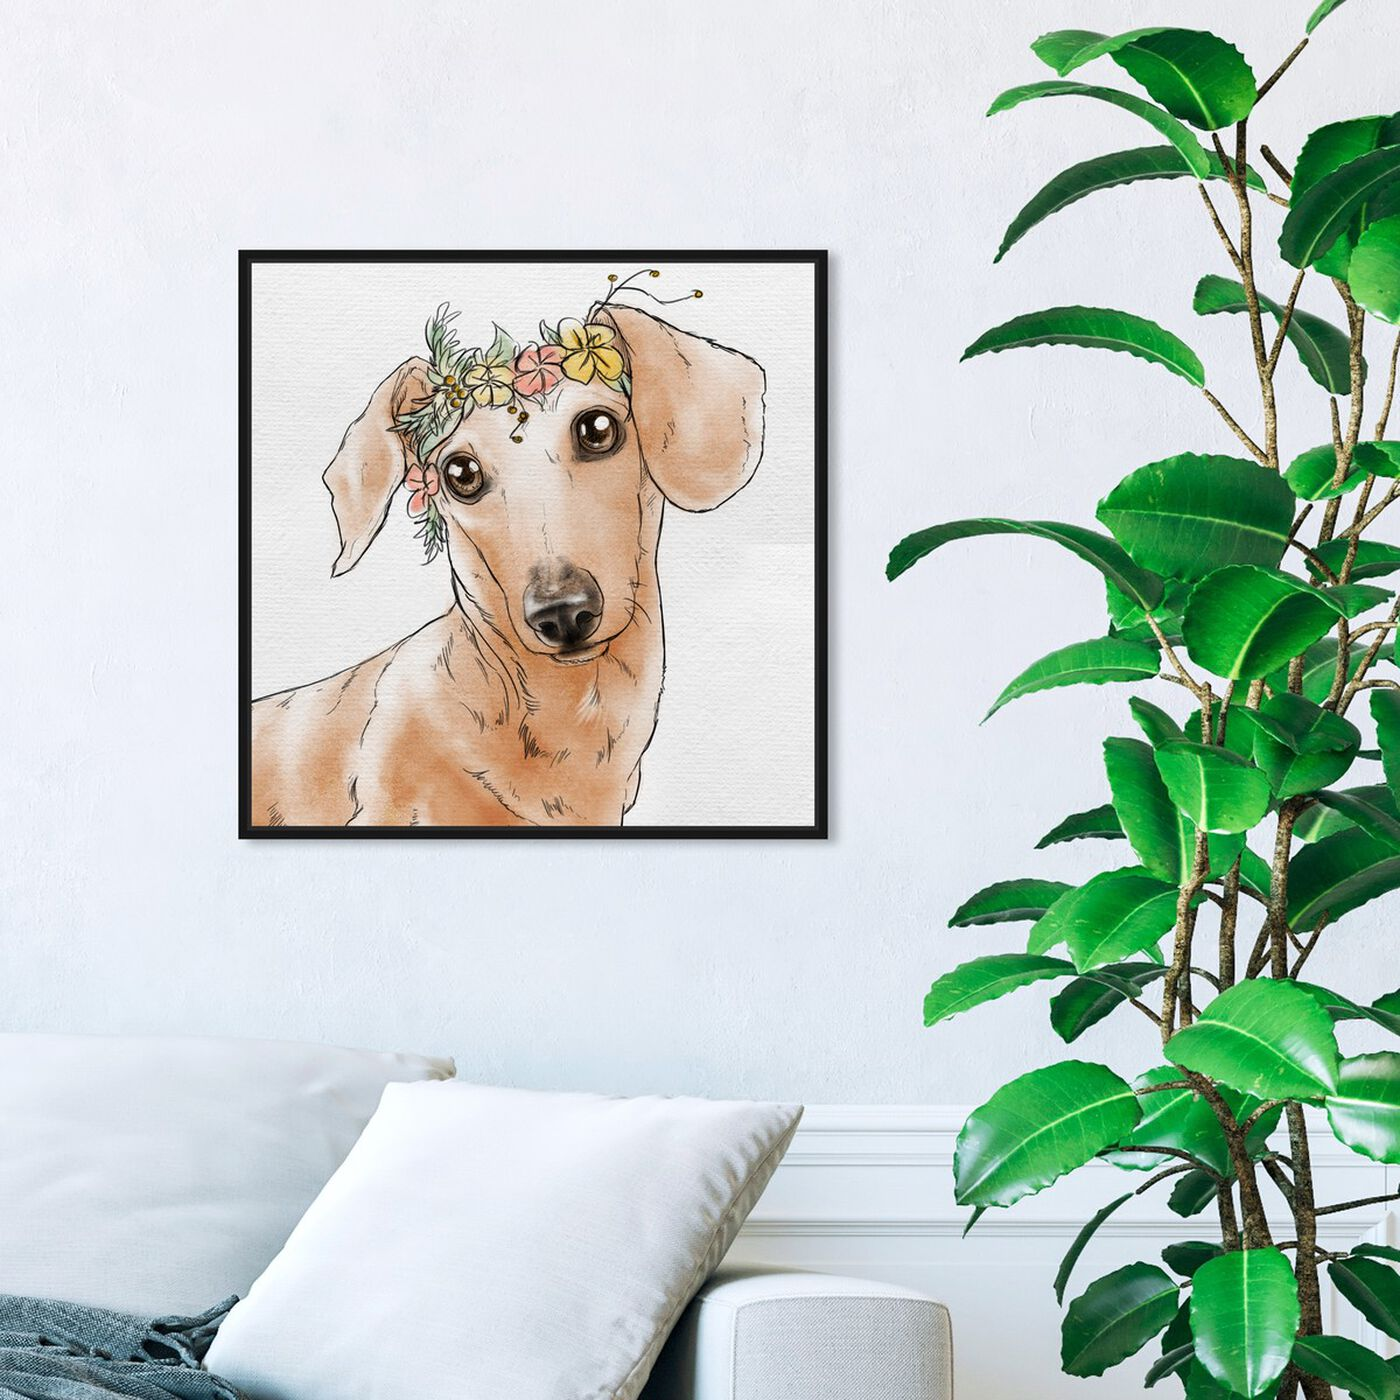 Hanging view of Floral Crown Dachshund featuring animals and dogs and puppies art.